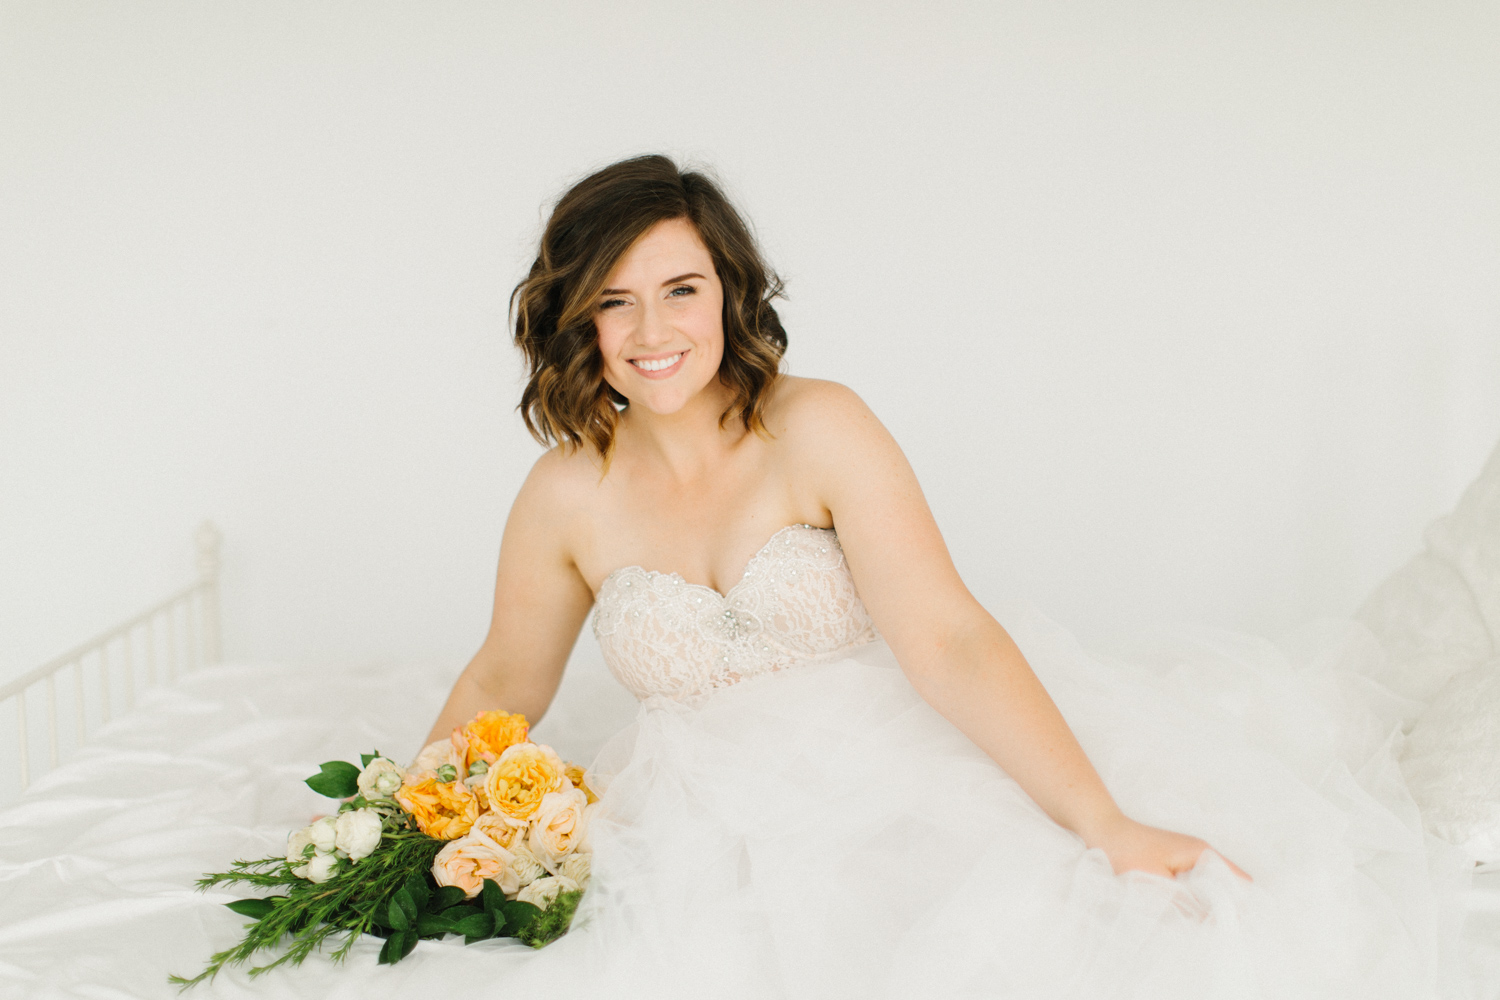 Seattle Fine Art Wedding Photographer | Seattle Downtown White Studio Bridal Session | Stunning Wedding Bouquet | Seattle Bride | Seattle Wedding | Photography Studio Space | Emma Rose Company Wedding Photography-37.jpg